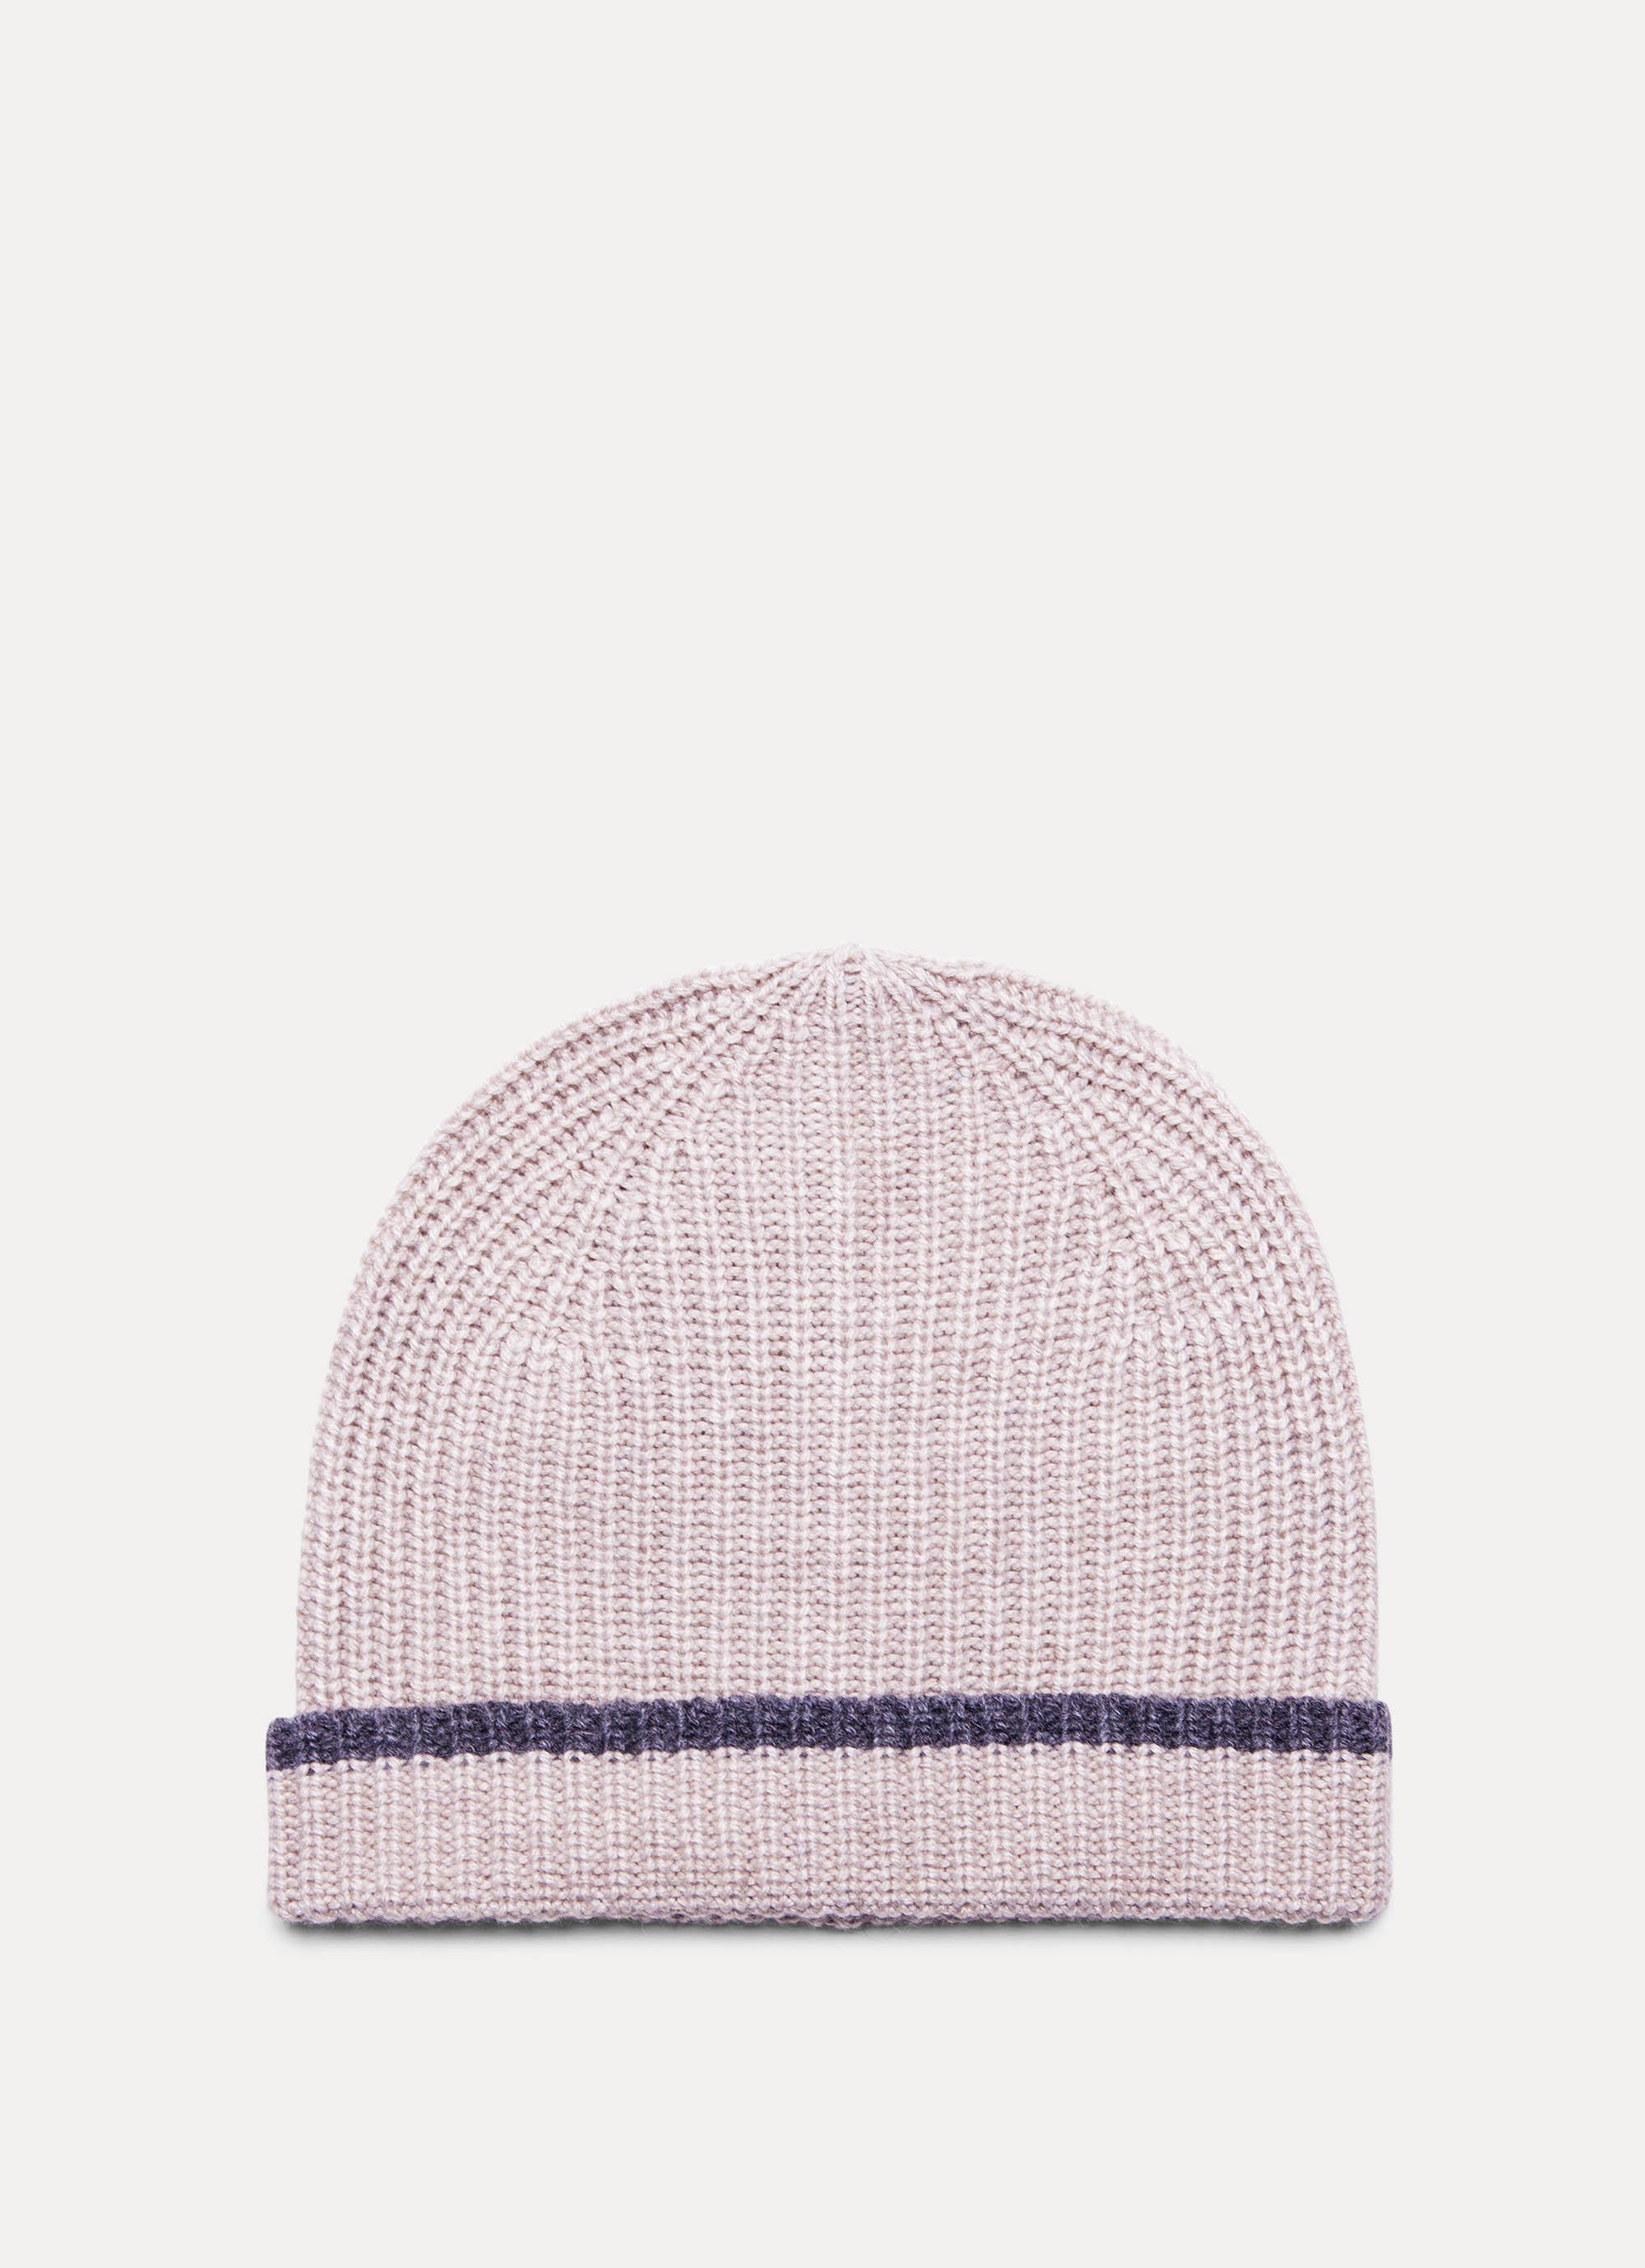 c795c3acd98 Hackett Ribbed Wool And Cashmere Blend Beanie Hat for Men - Lyst